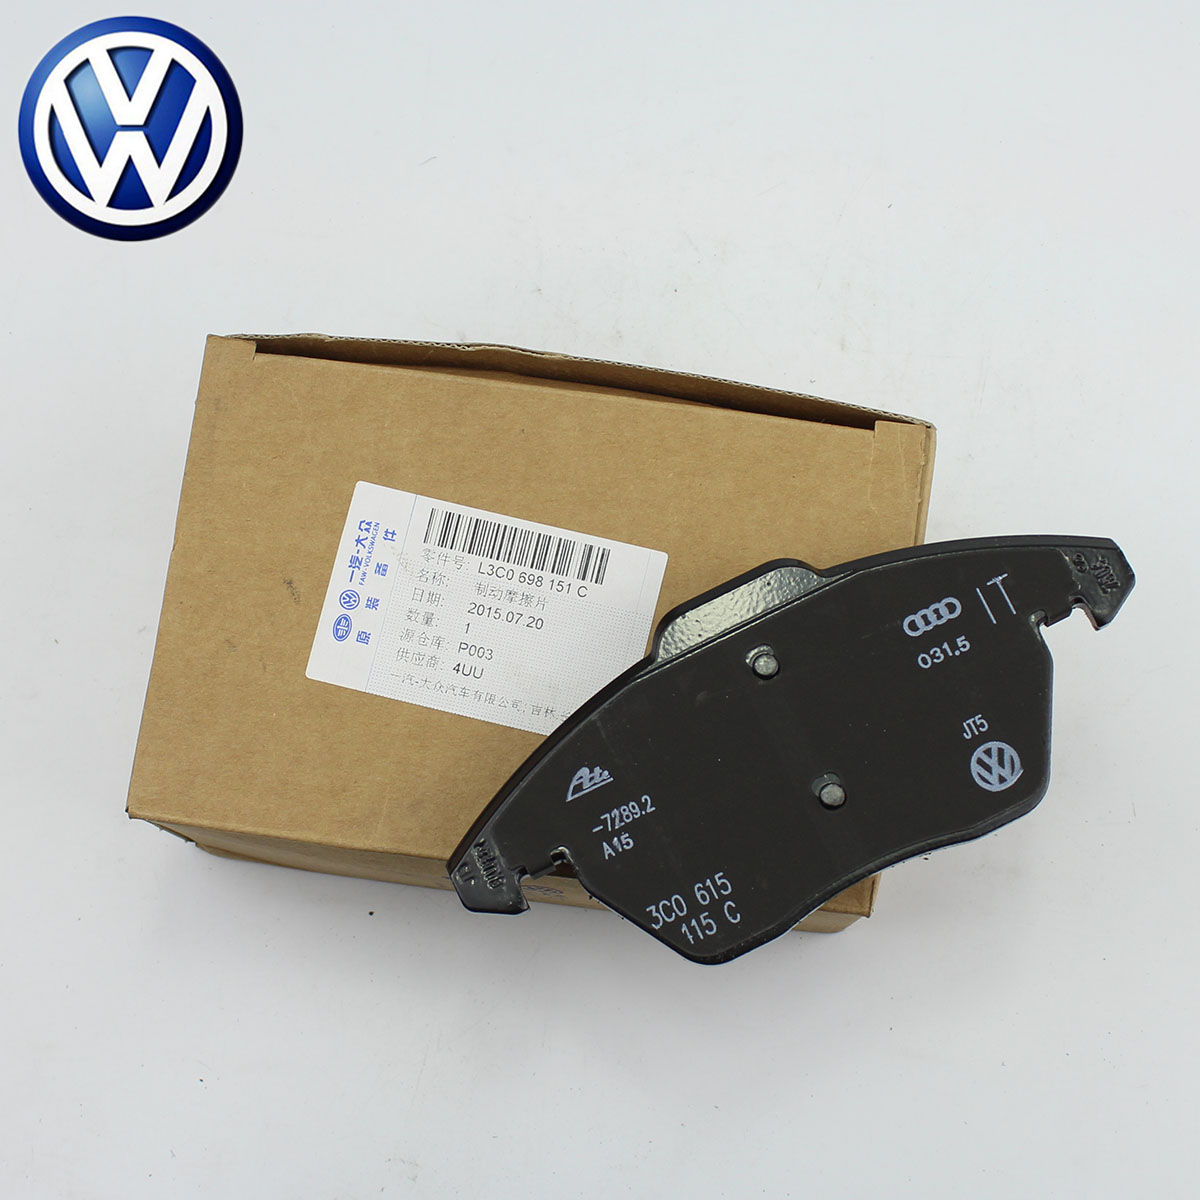 Rear OEM Brake Pads L3C0 698 151 C For VW Passat CC/NF Golf MK6 Passat B6/B7 набор автомобильных экранов trokot для vw passat b7 2010 2014 на передние двери tr0408 01